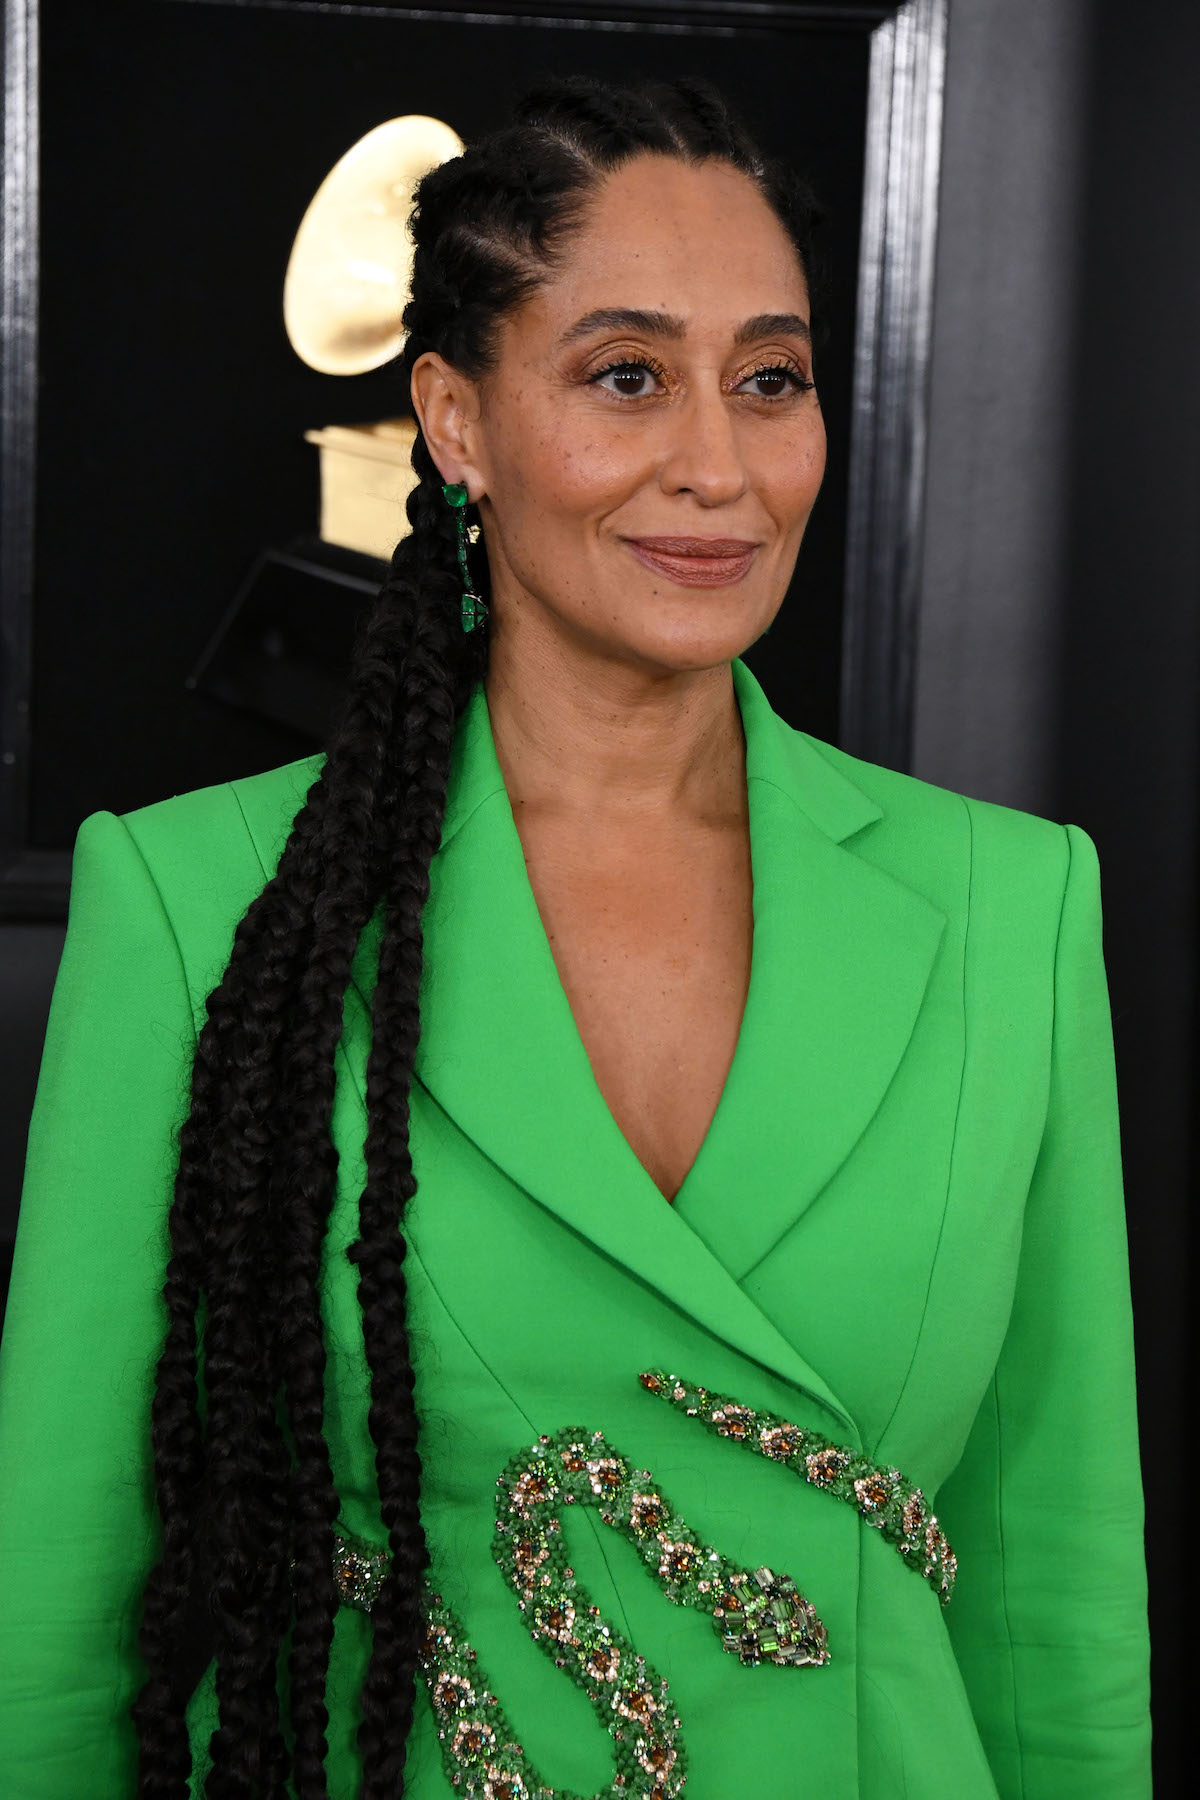 Tracee Ellis Ross attending the 61st Grammy Awards in green jacket